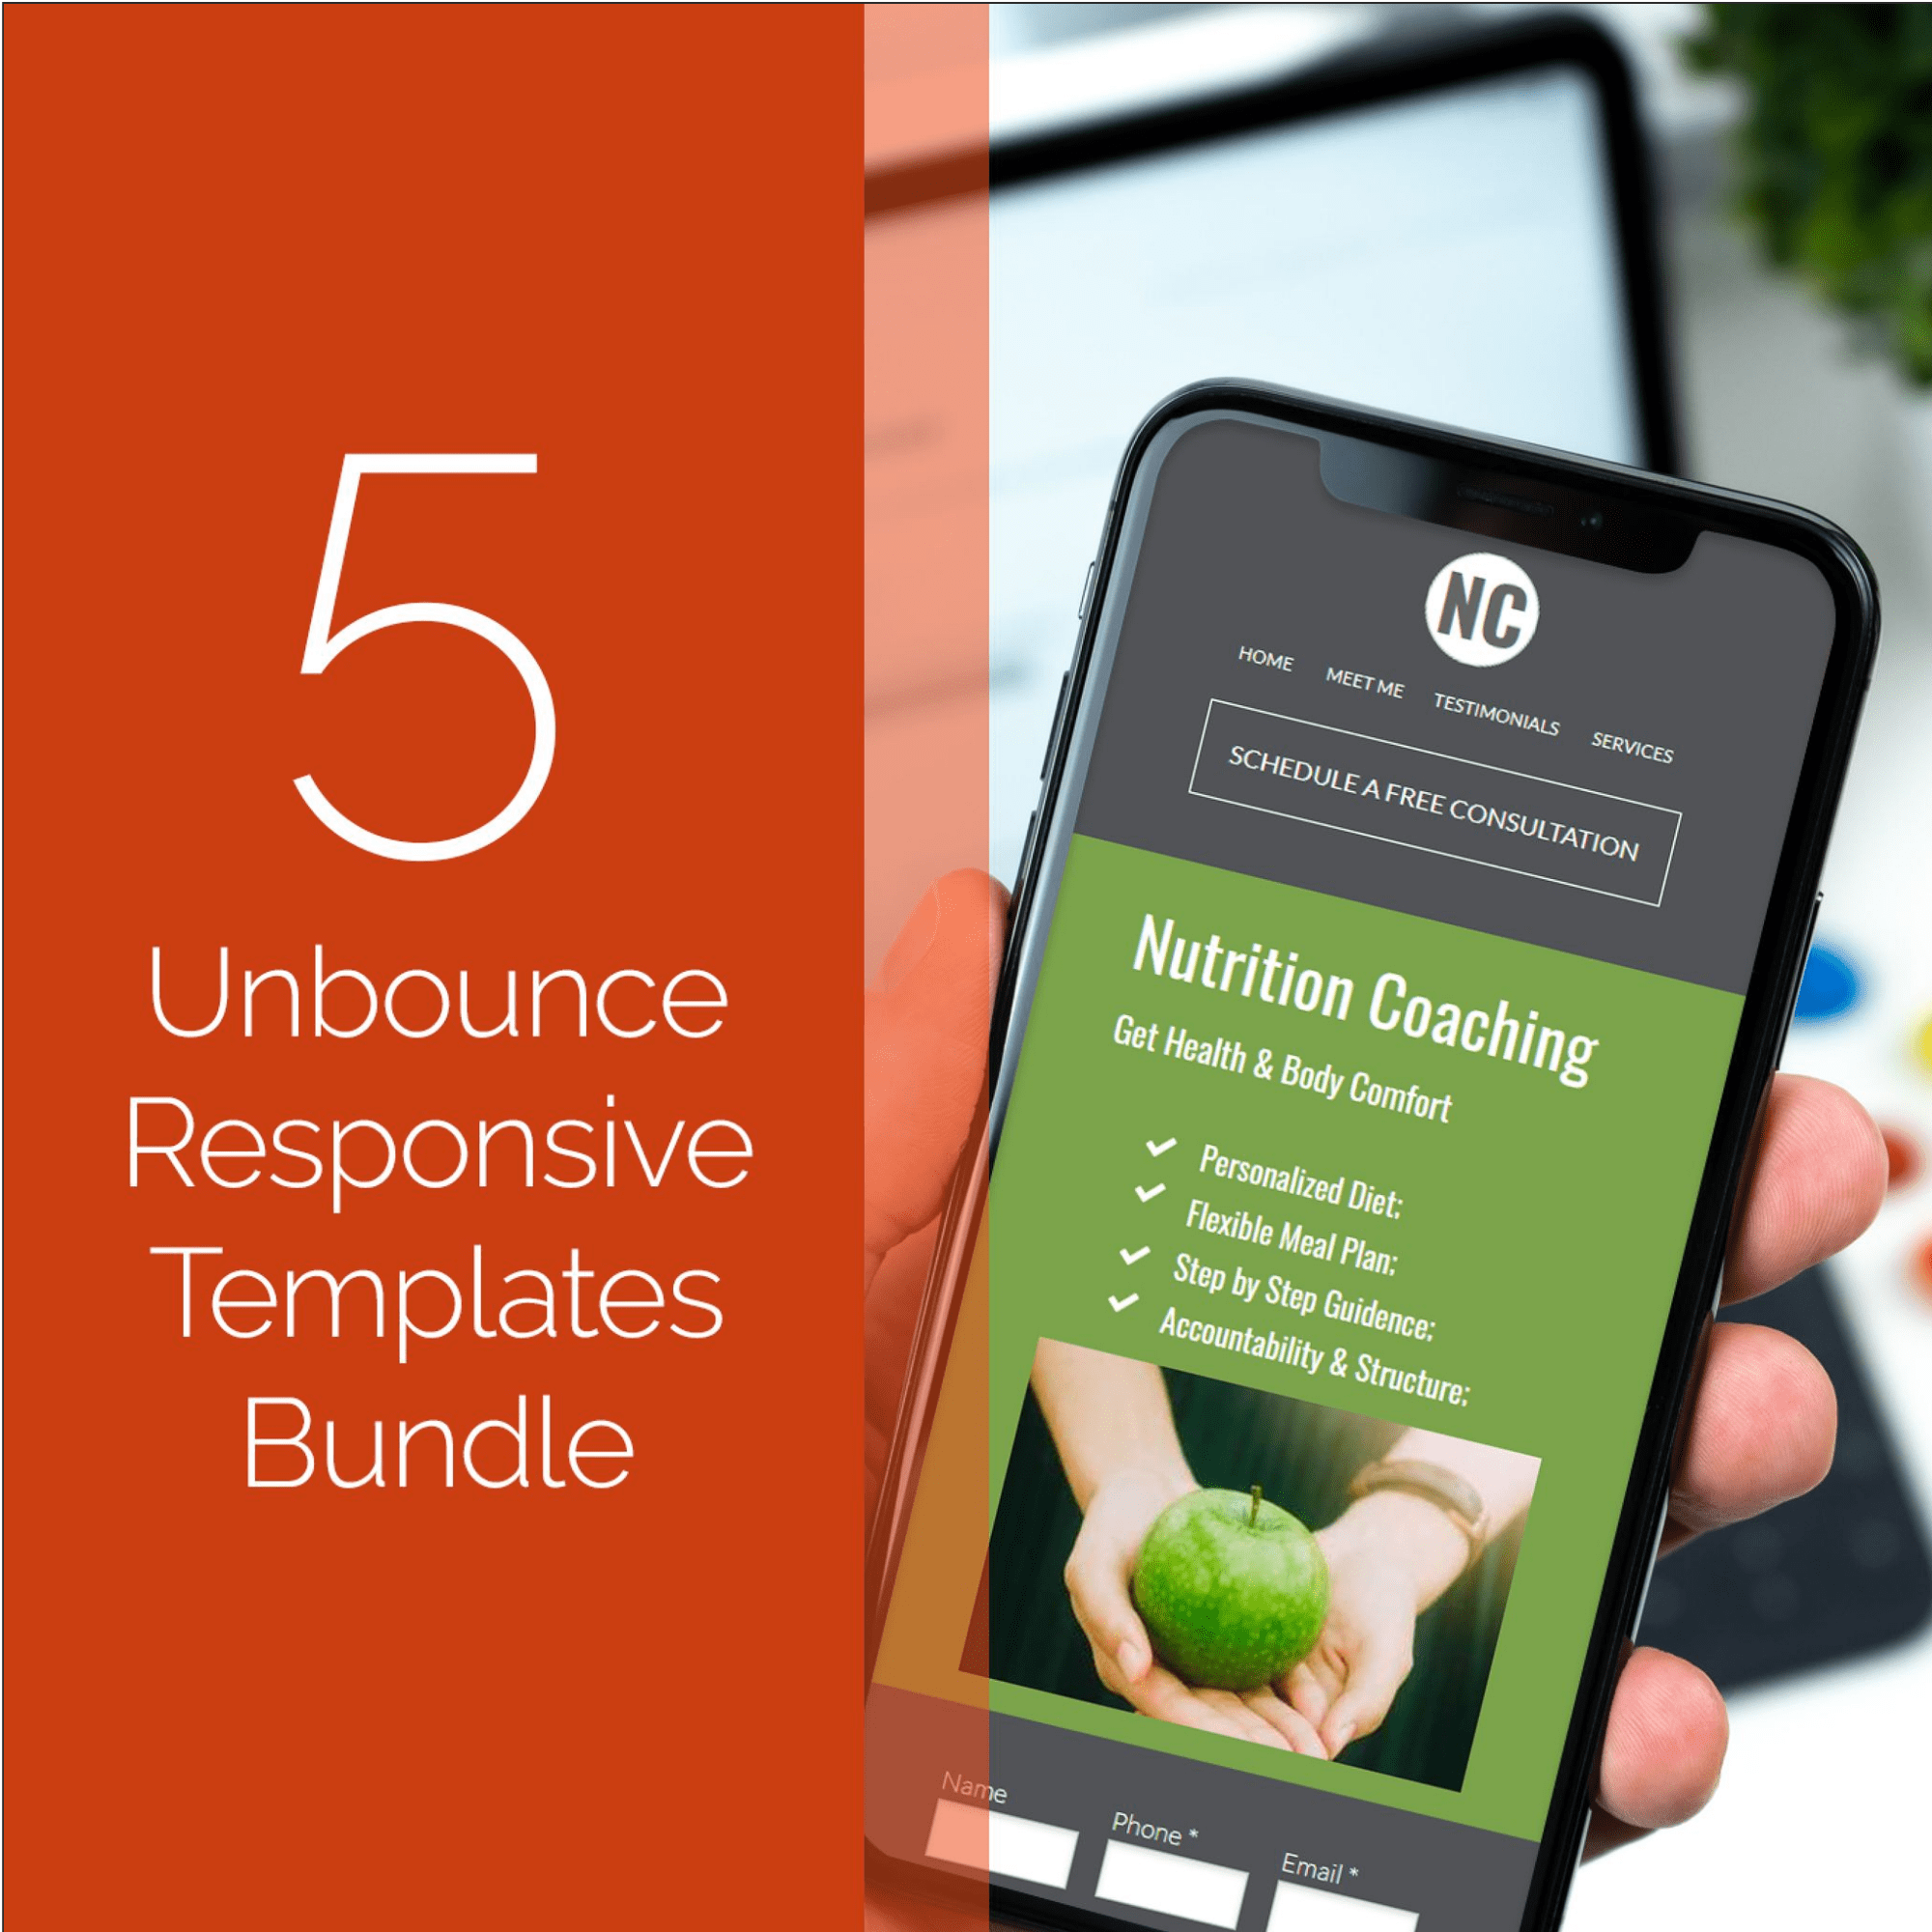 Acuena Has Released Exclusive Unbounce Landing Page Bundles for MasterBundles and You're Gonna Like Those - 5 unbounce responsive templates